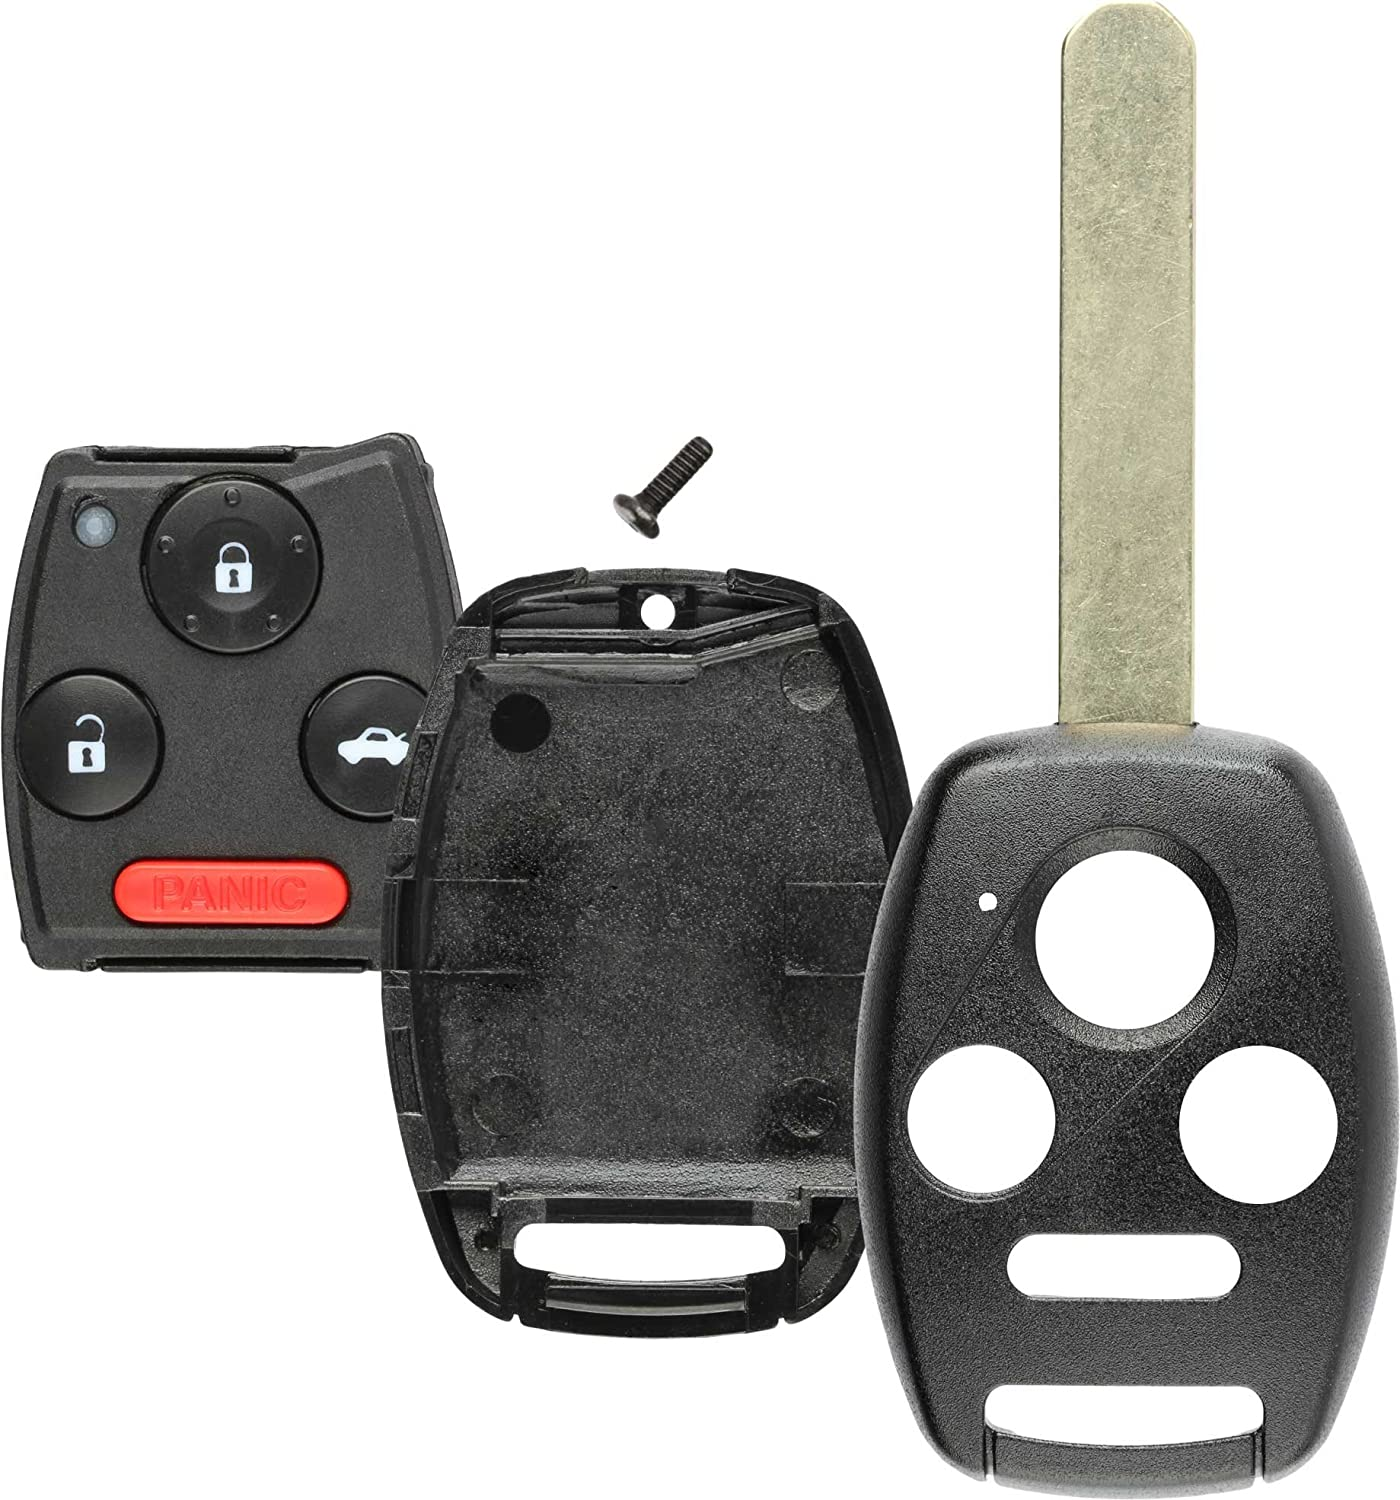 N5F-S0084A MLBHLIK-1T Discount Keyless Replacement Uncut Key Shell and Gut Case and Pad Compatible with Honda Civic Accord Pilot KR55WK49308